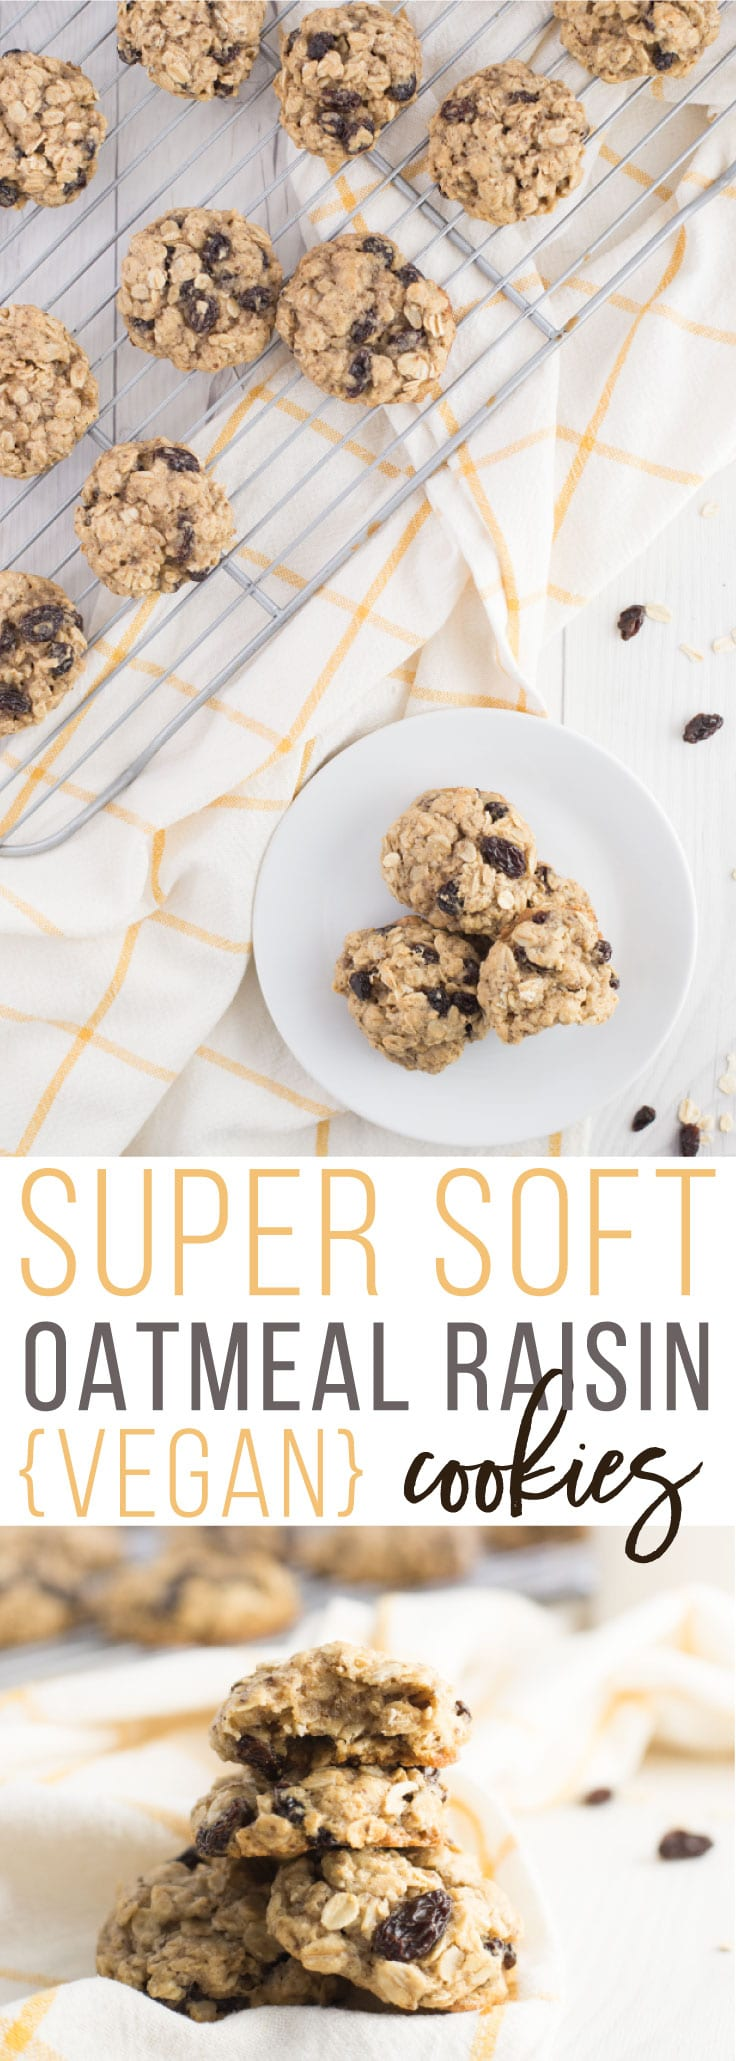 Super Soft Oatmeal Raisin Cookies - This cookie classic gone vegan is so SIMPLE to make and can be ready just shy of 30 minutes. Plump raisins, hearty oats with a touch of brown sugar and cinnamon make these delicious cookies super soft and flavorful. You need this vegan cookie recipe in your life STAT. #vegan #vegetarian #vegandessert #dessert #cookies #healthydessert | mindfulavocado